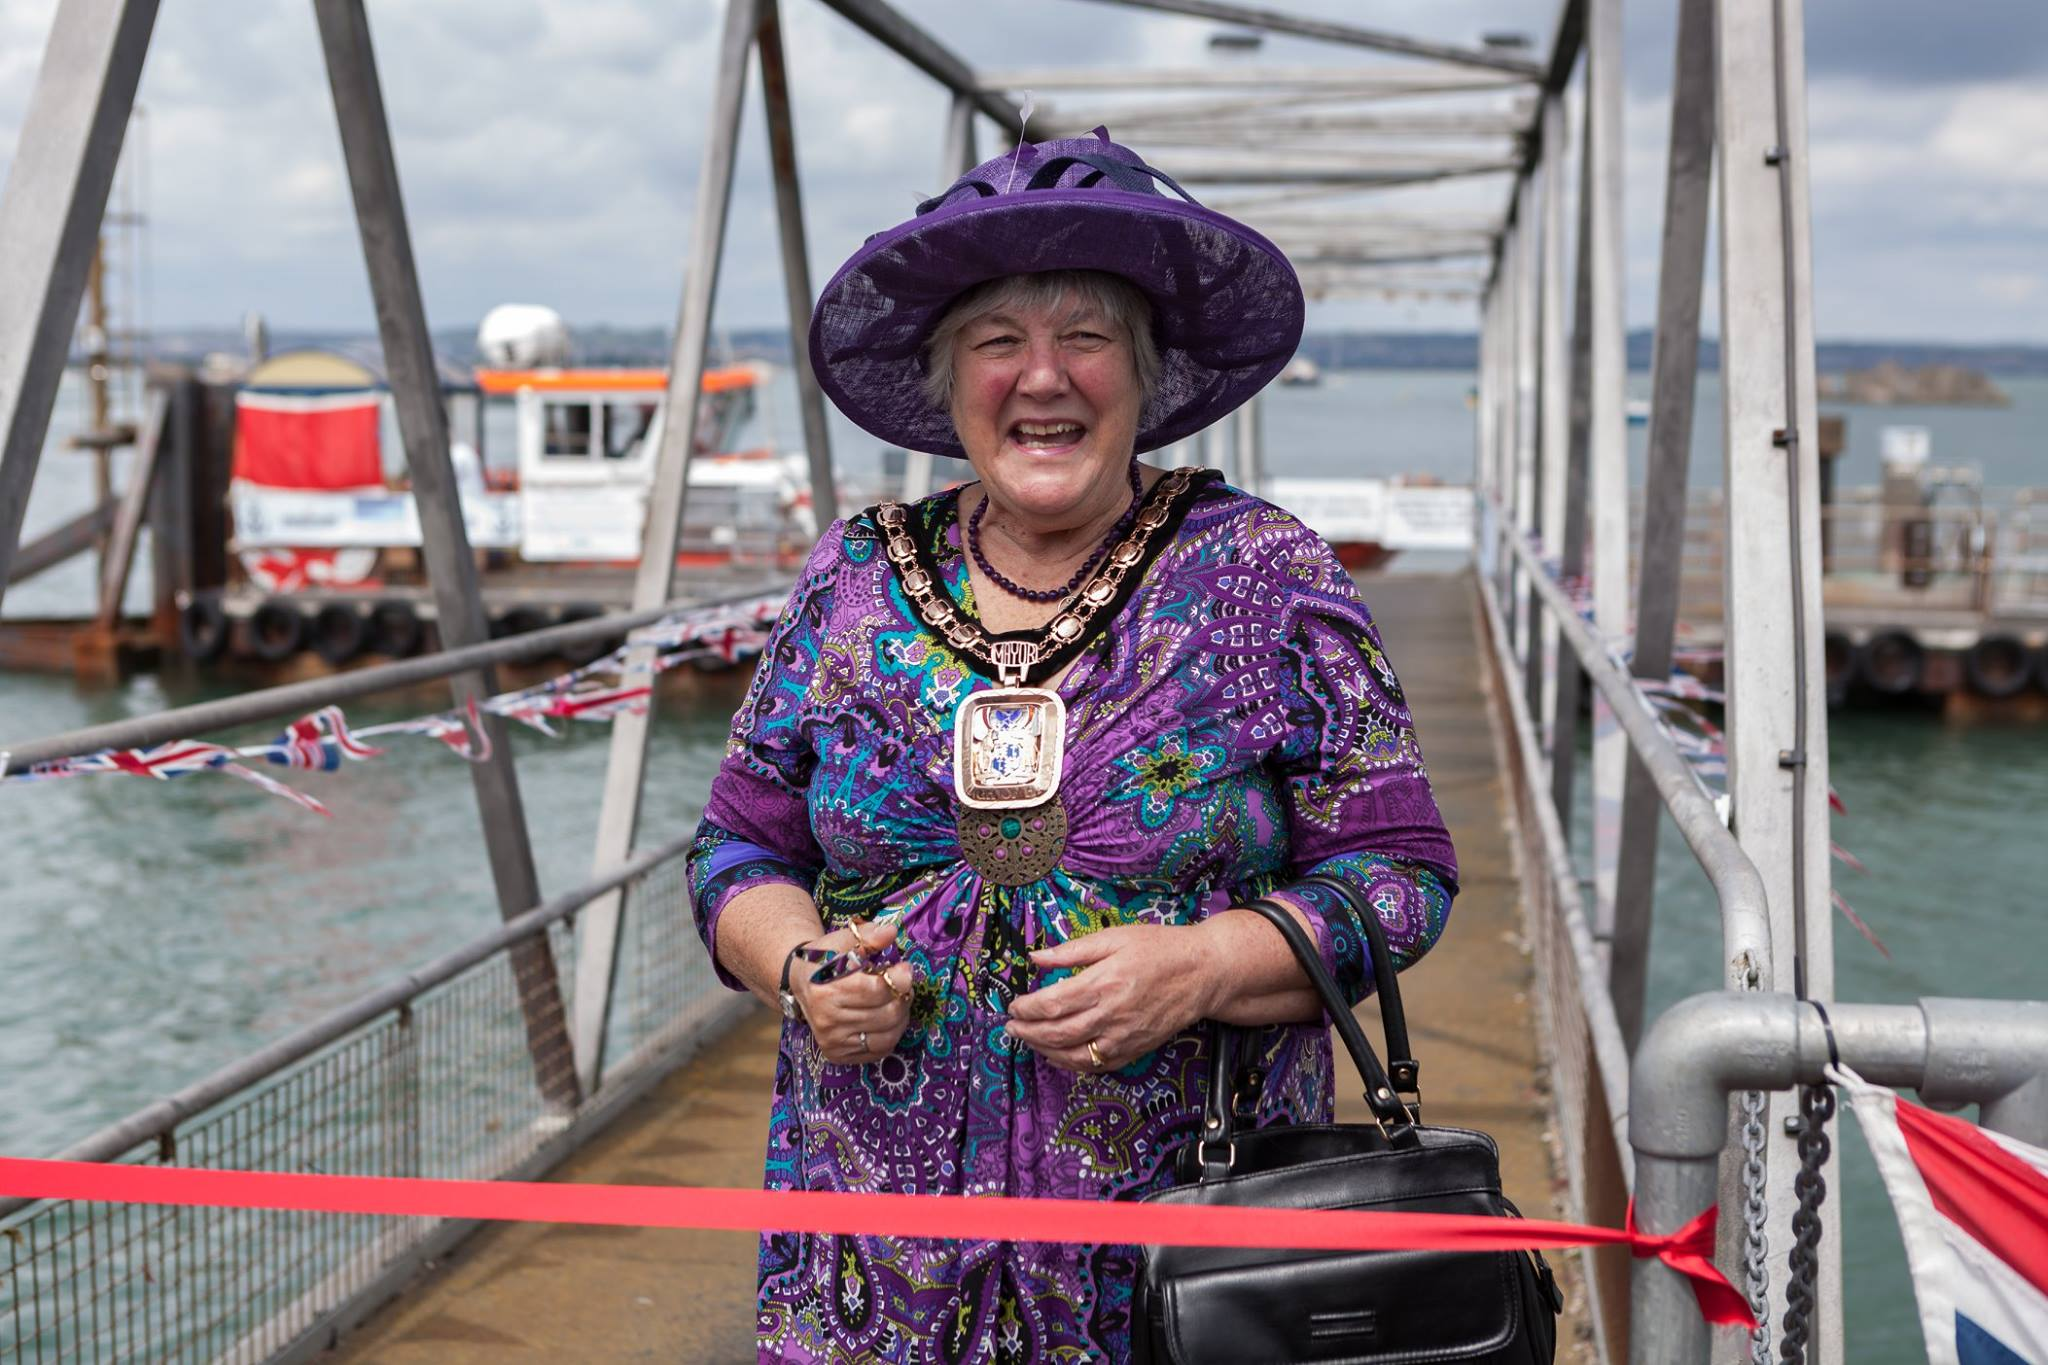 FAITH PONSONBY - MAYOR OF HAVANT